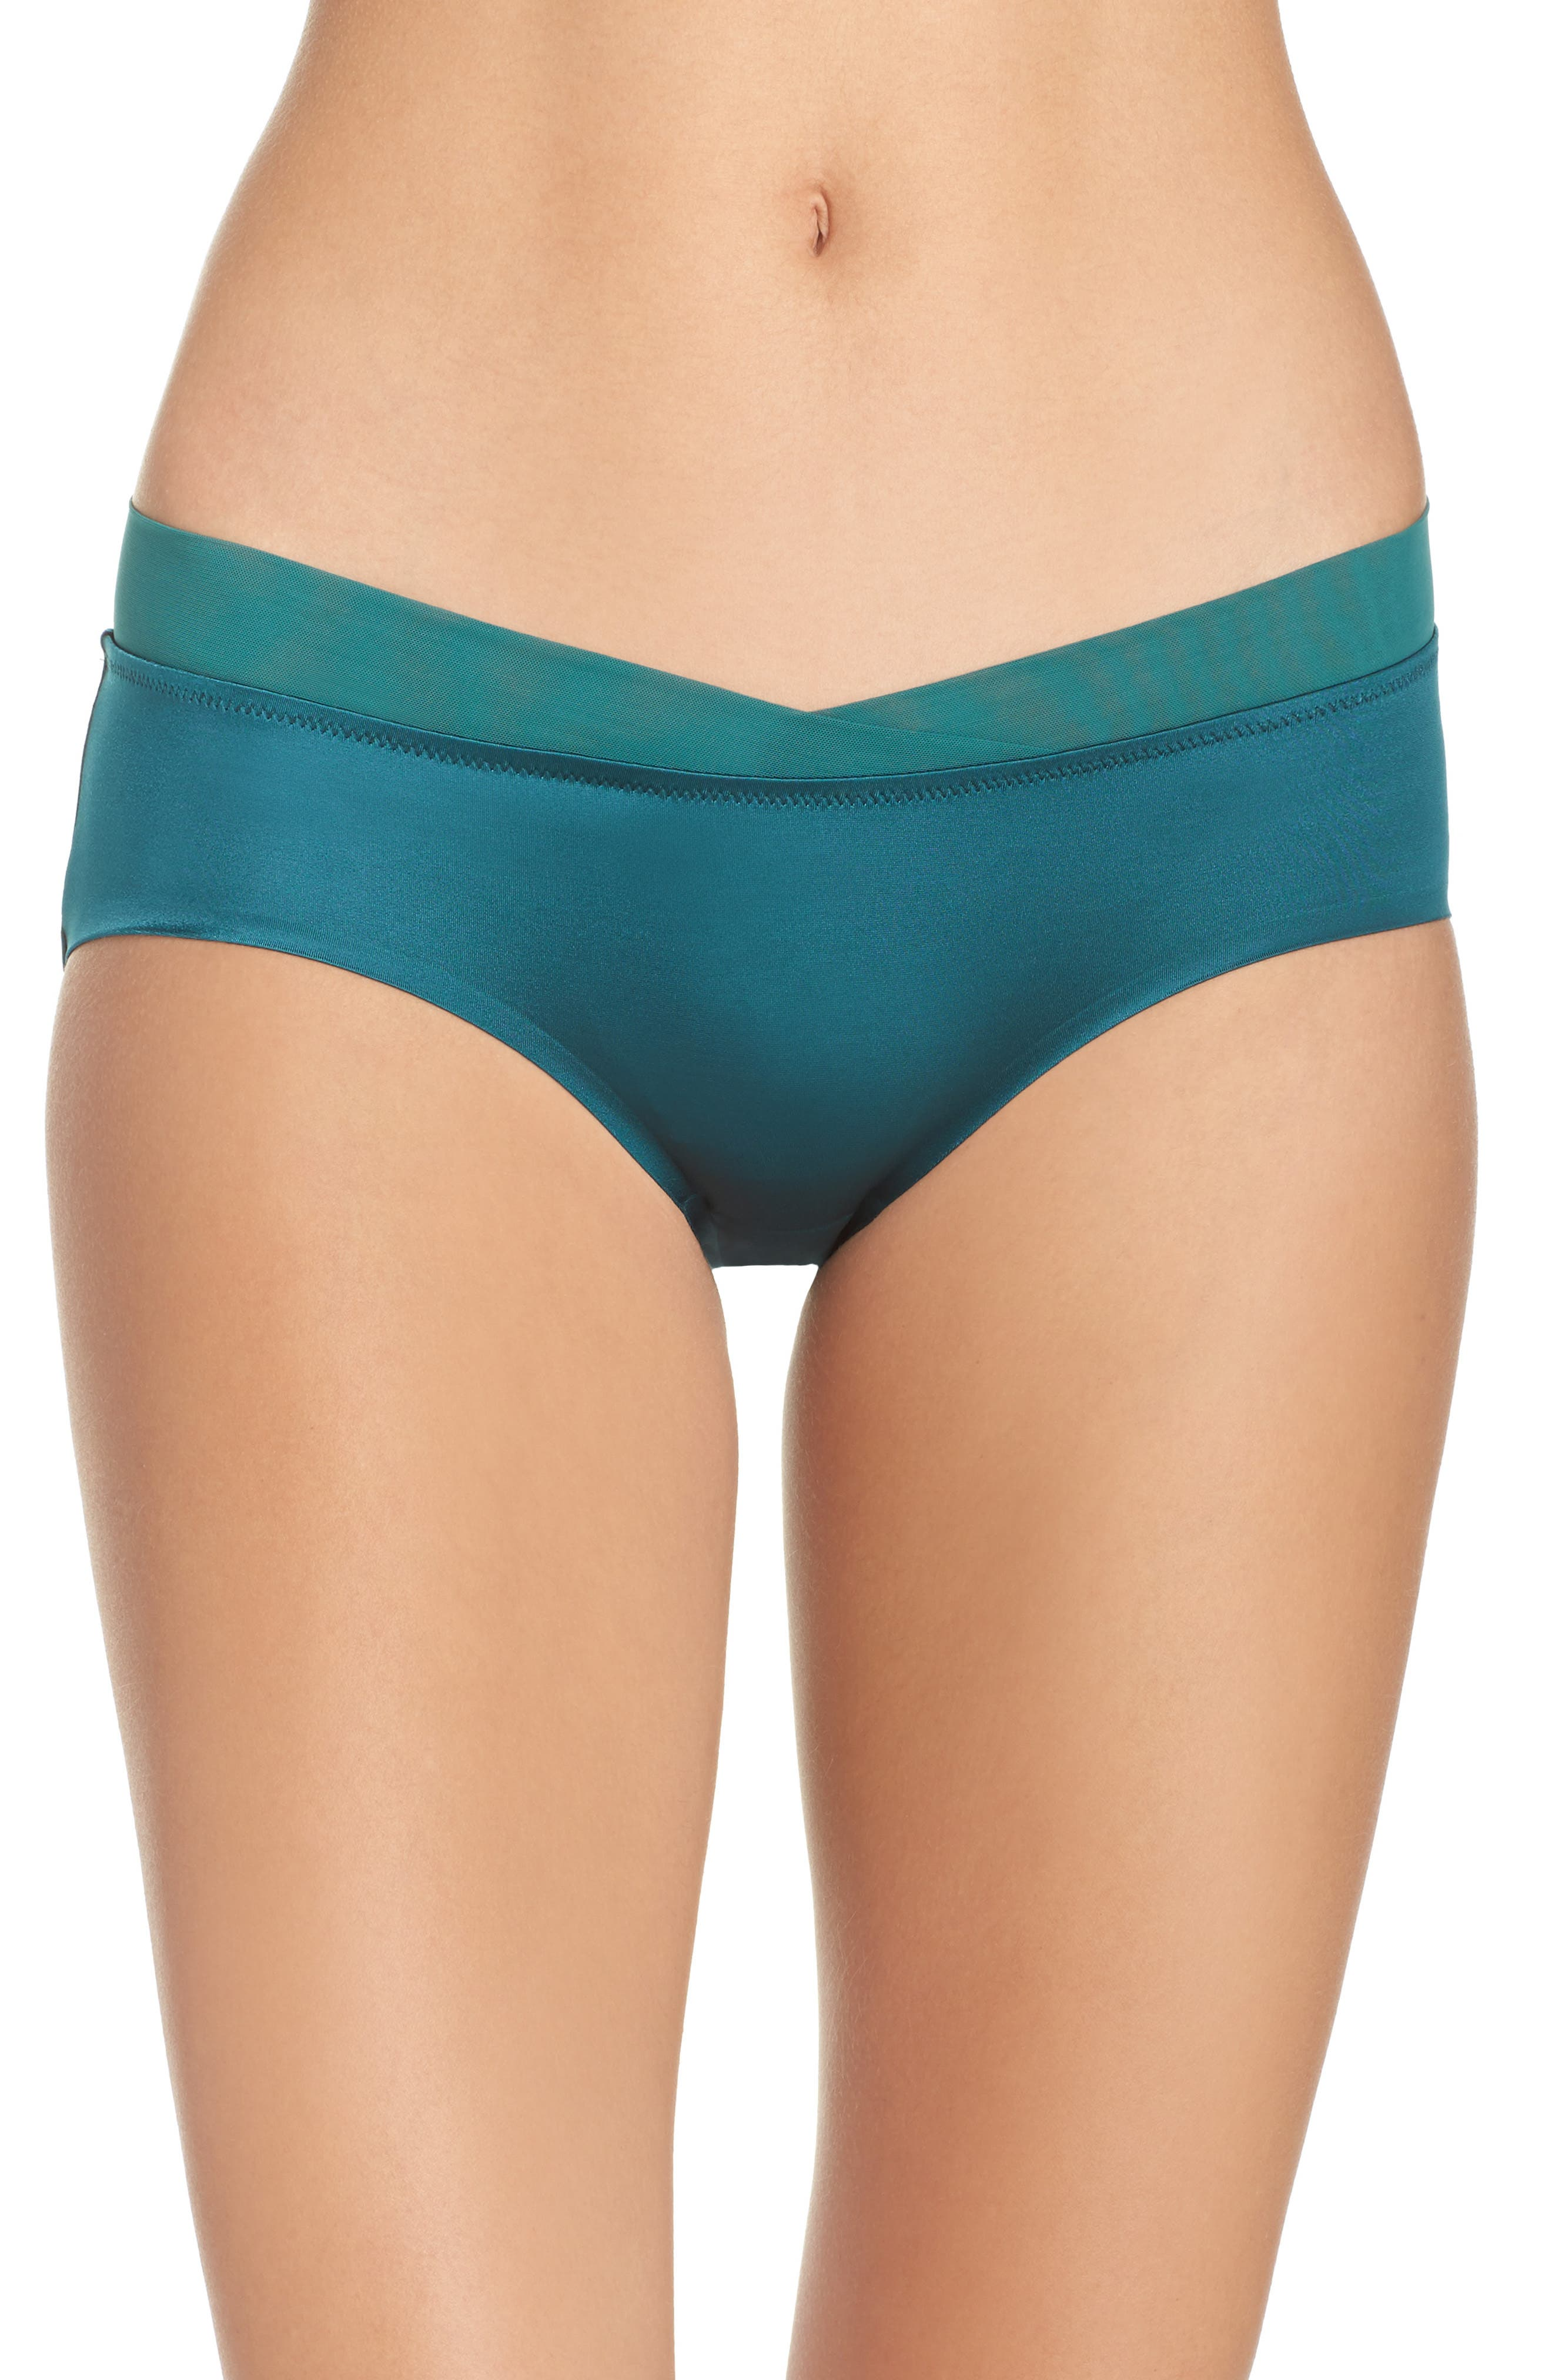 Crossfront Hipster Briefs,                             Main thumbnail 1, color,                             Deep Teal